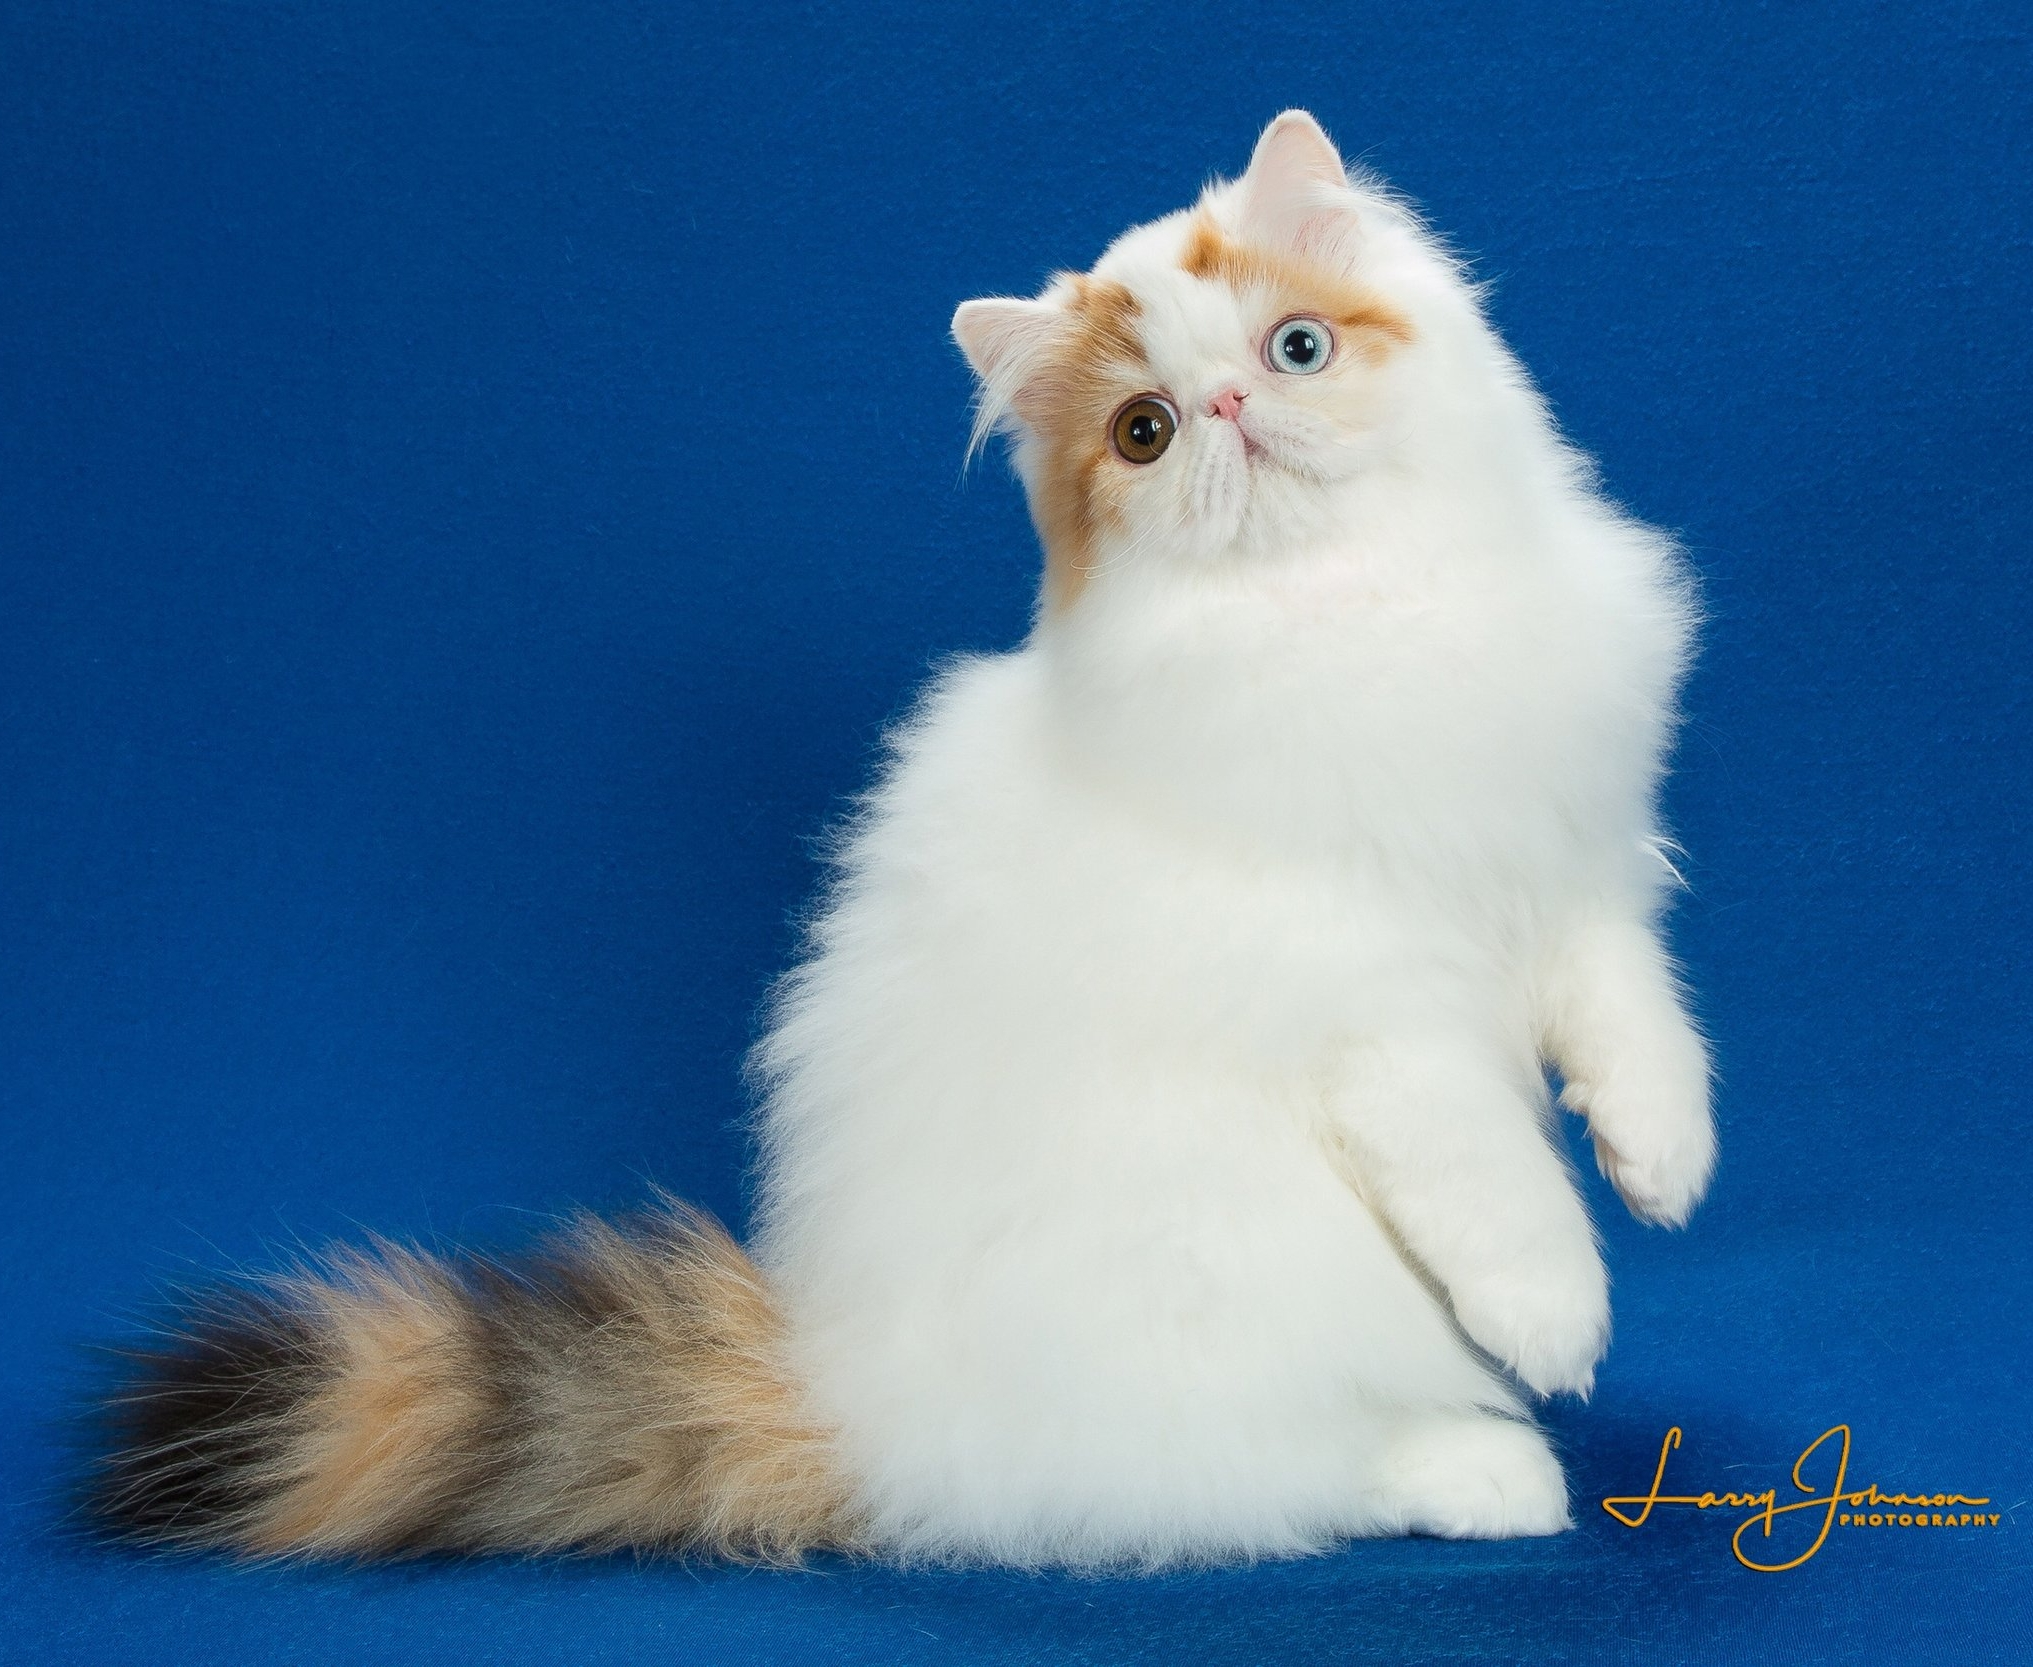 2018 GC, RW Steamboat Pistol Annie (Odd eyed Persian, age 4 months in picture)